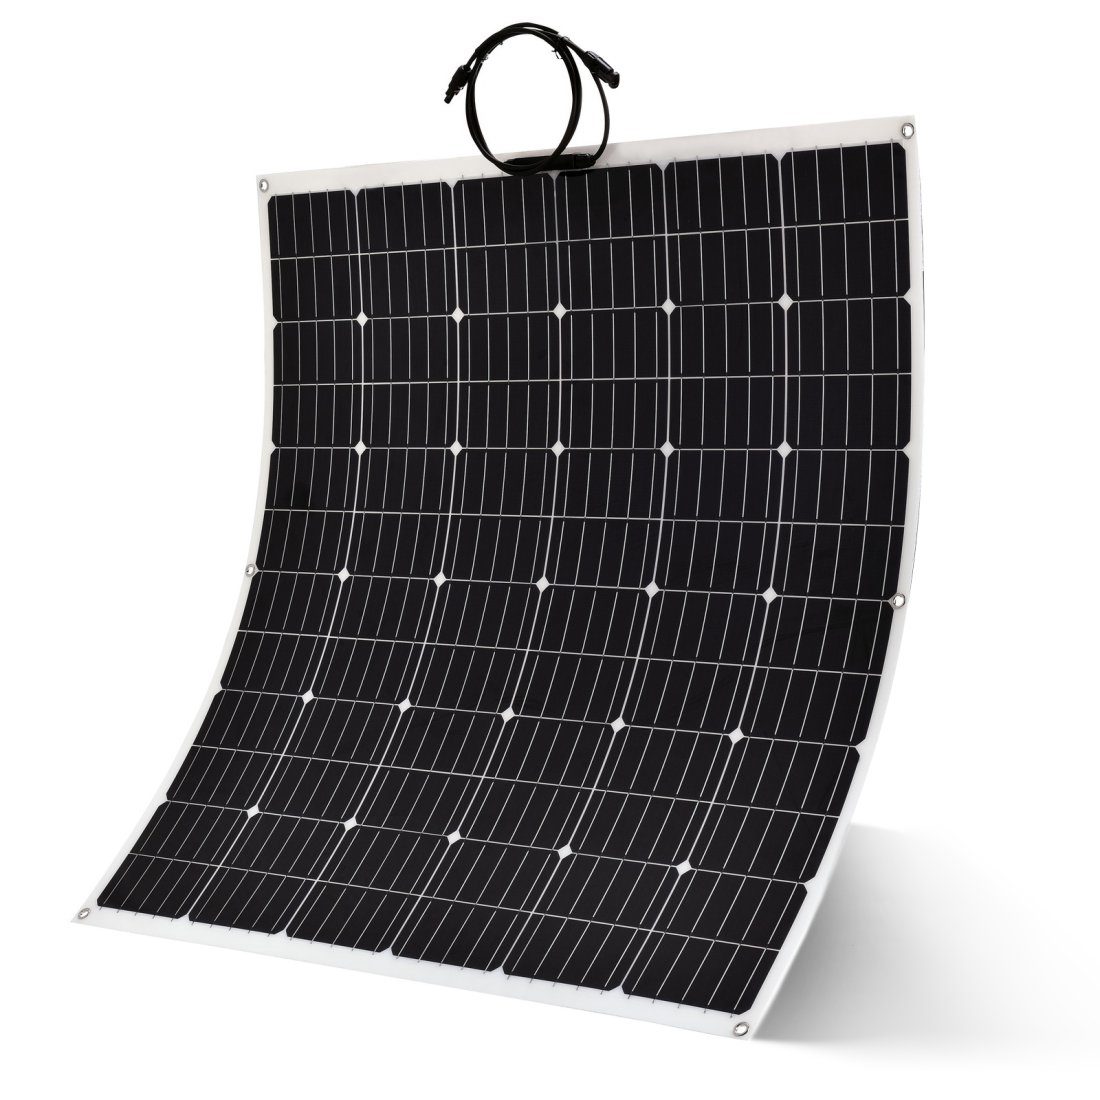 Maxray 240W Flexible Solar Panel Kit Mono Caravan Camping Boat Power Charging